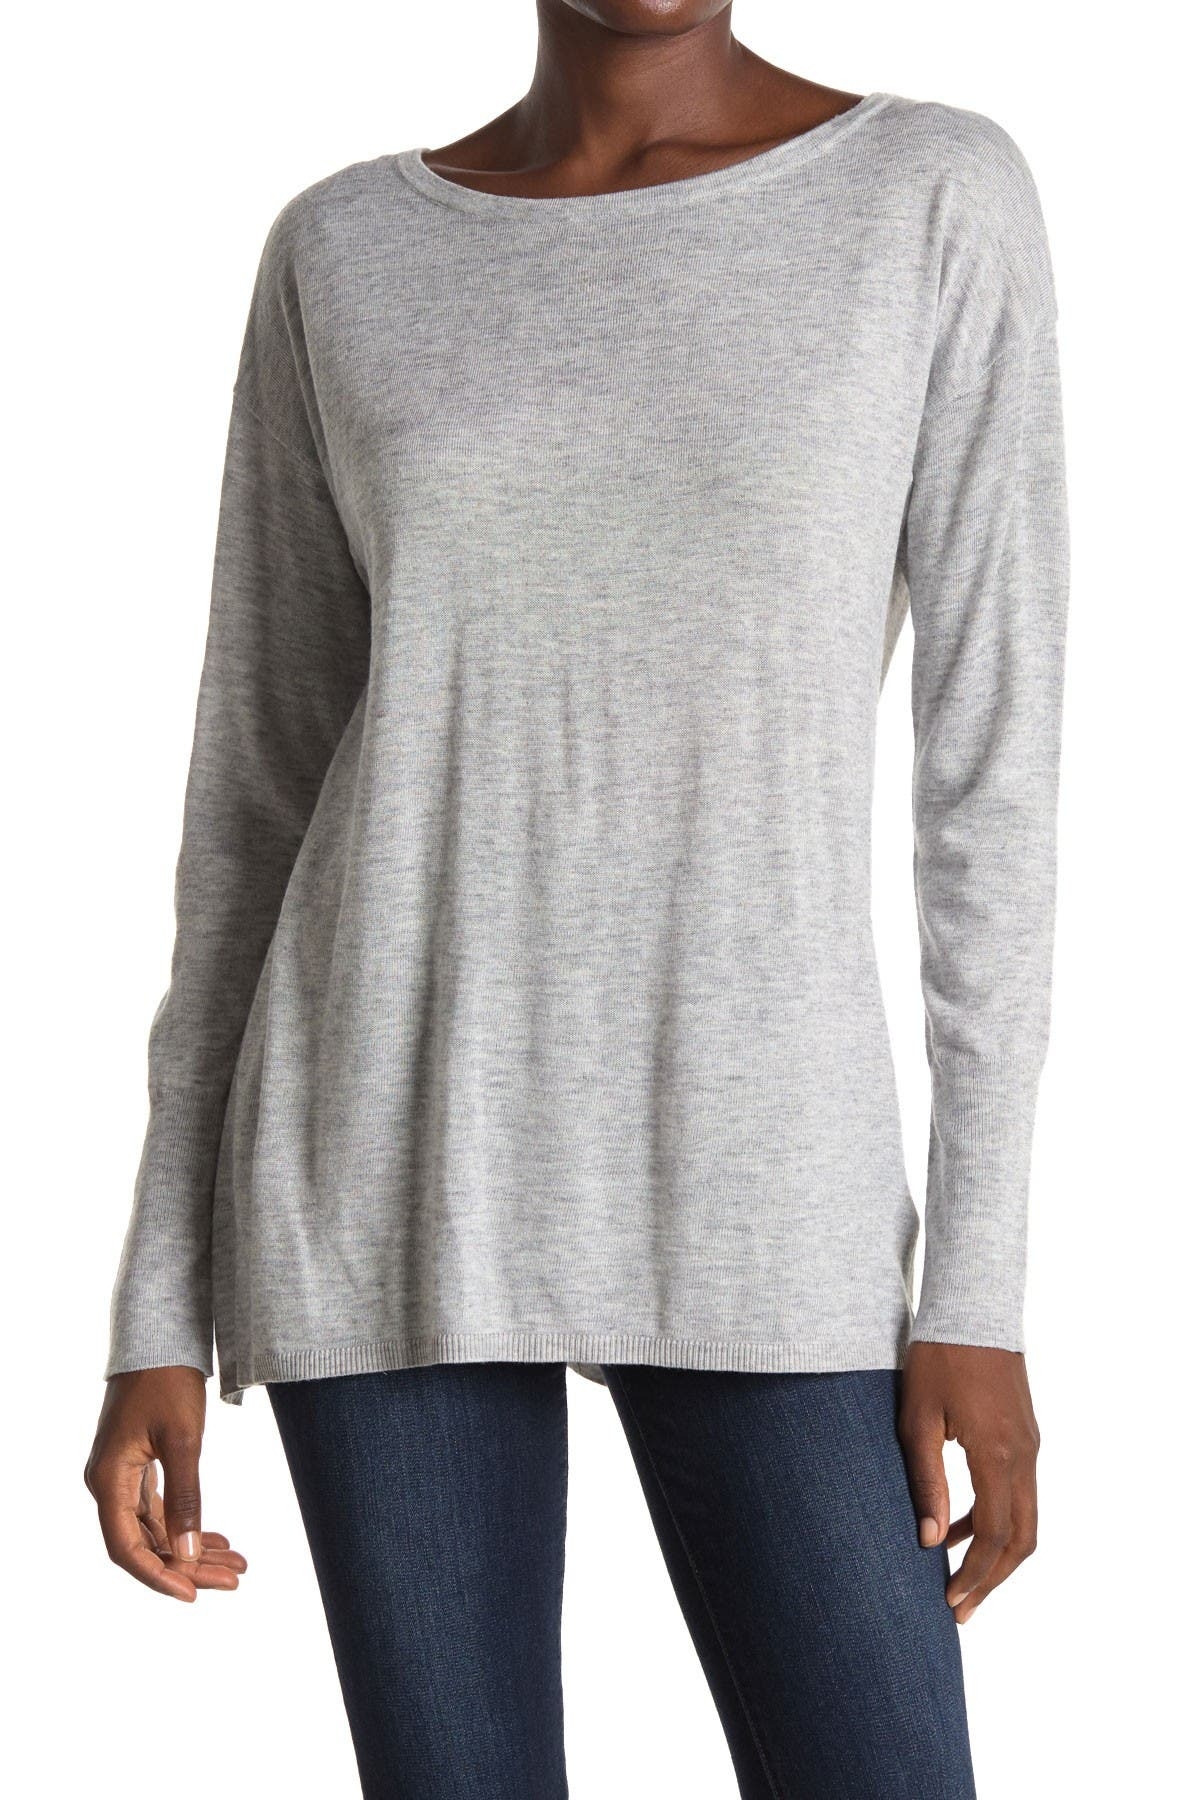 Image of NYDJ Boatneck Button Back Sweater